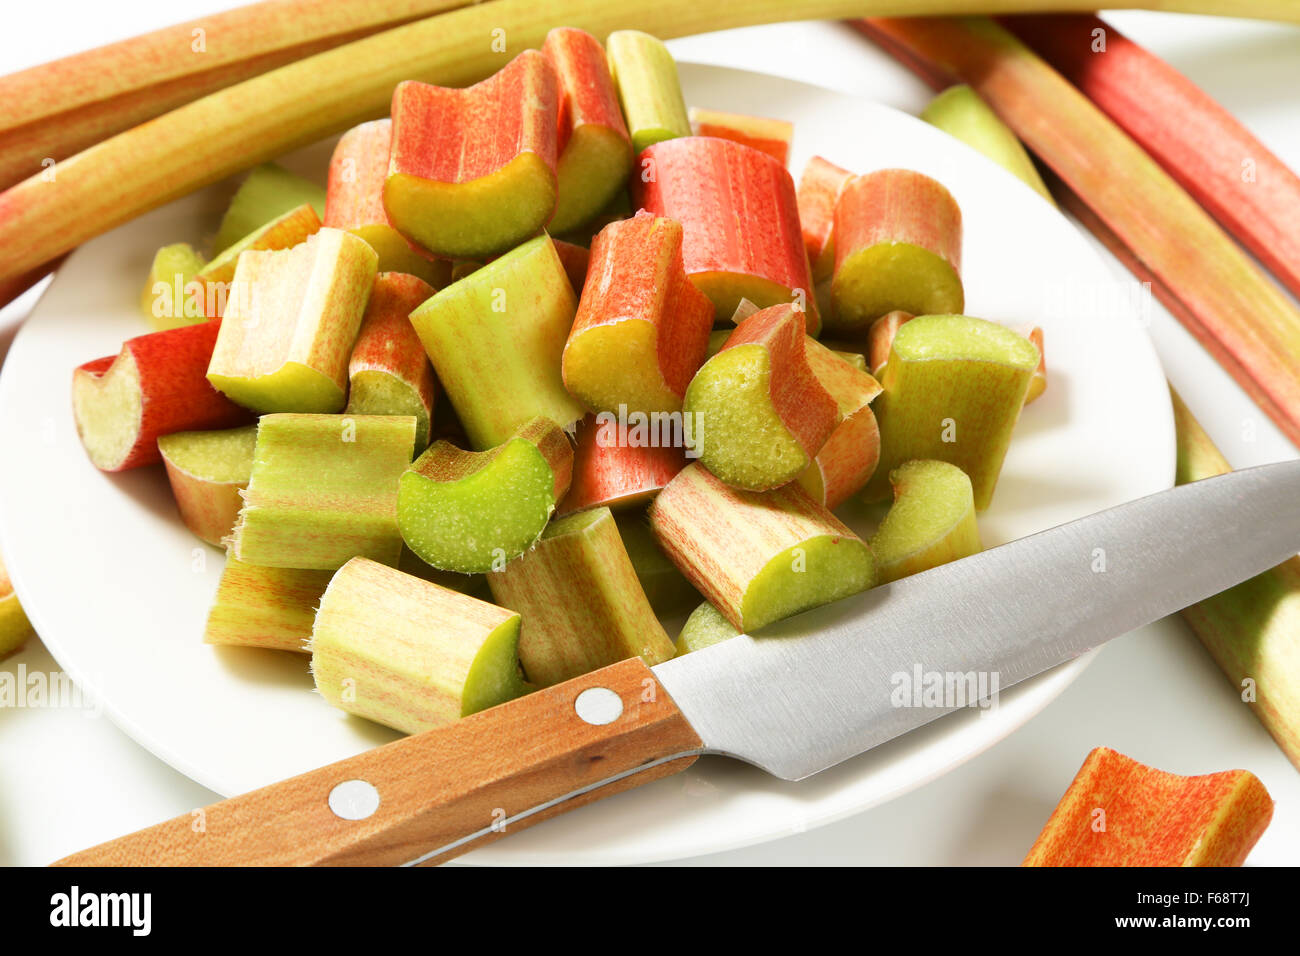 detail of chopped rhubarb on white plate - Stock Image